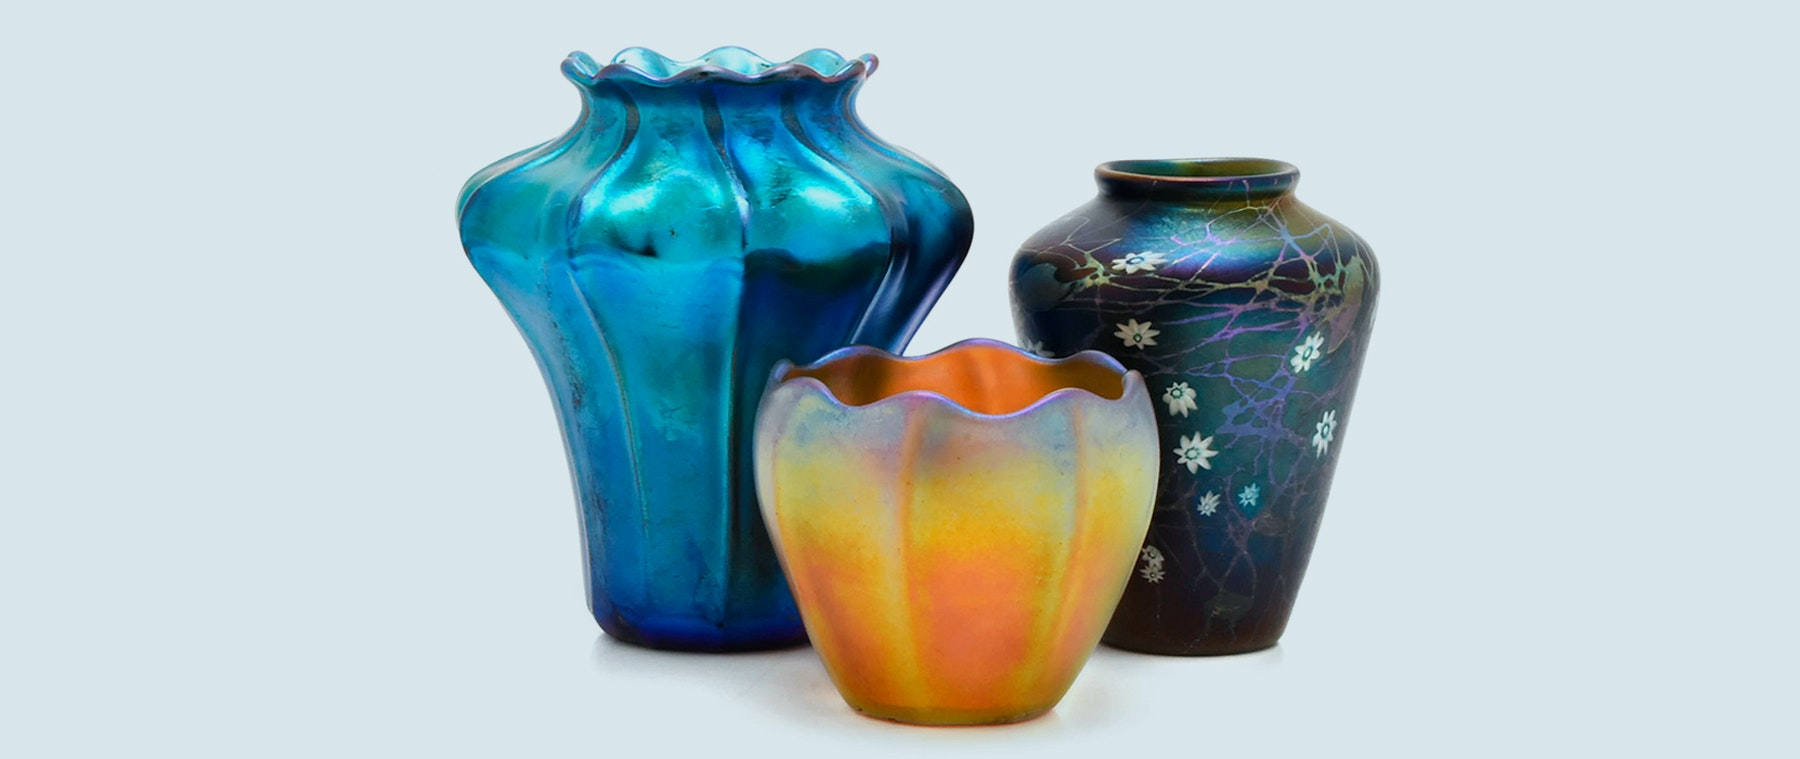 A.C.E. Series: Tiffany Studios Glass